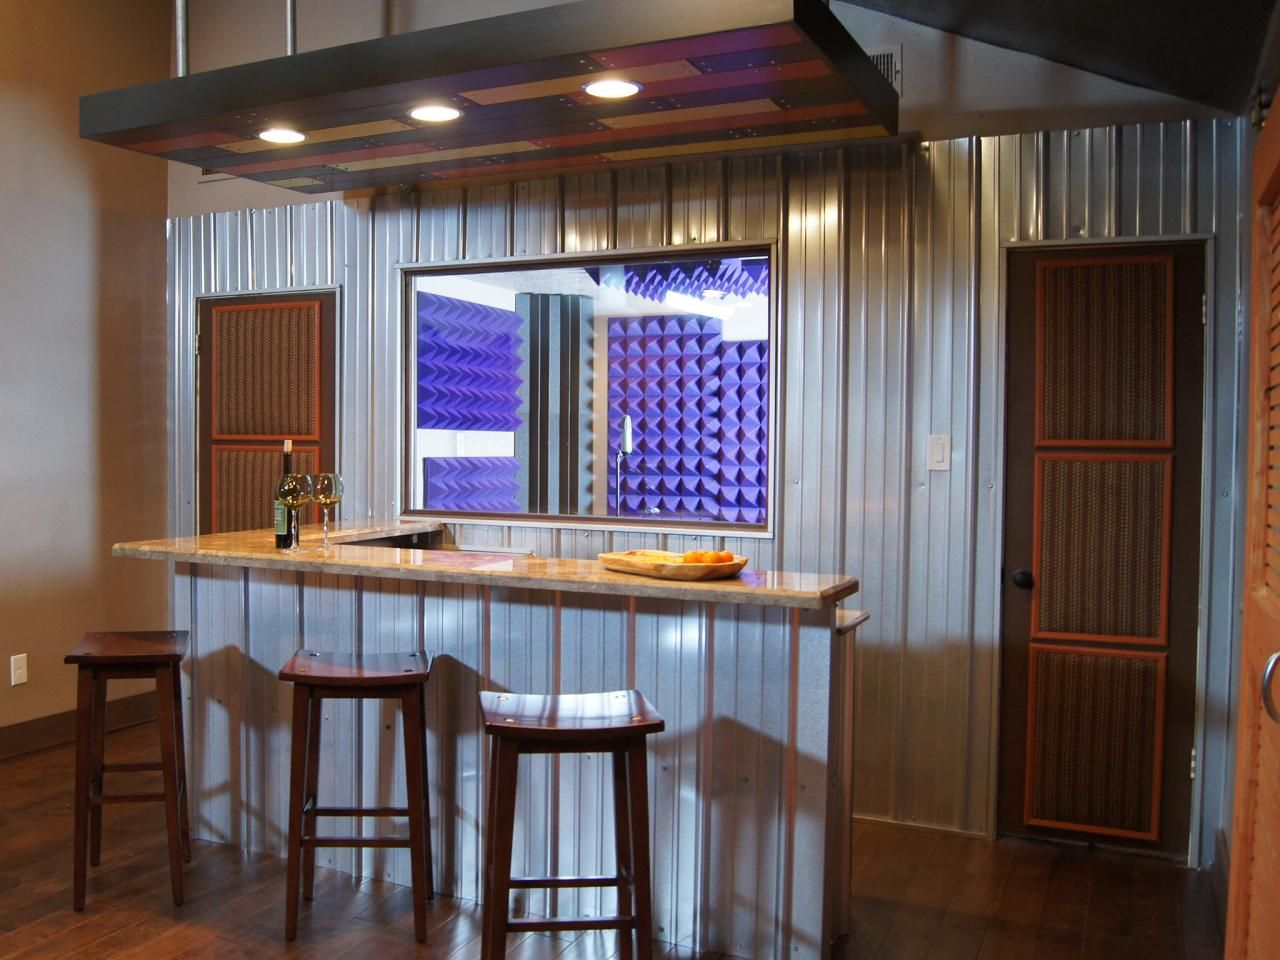 Charmant Basement Bar Ideas. Basement Bar Ideas M